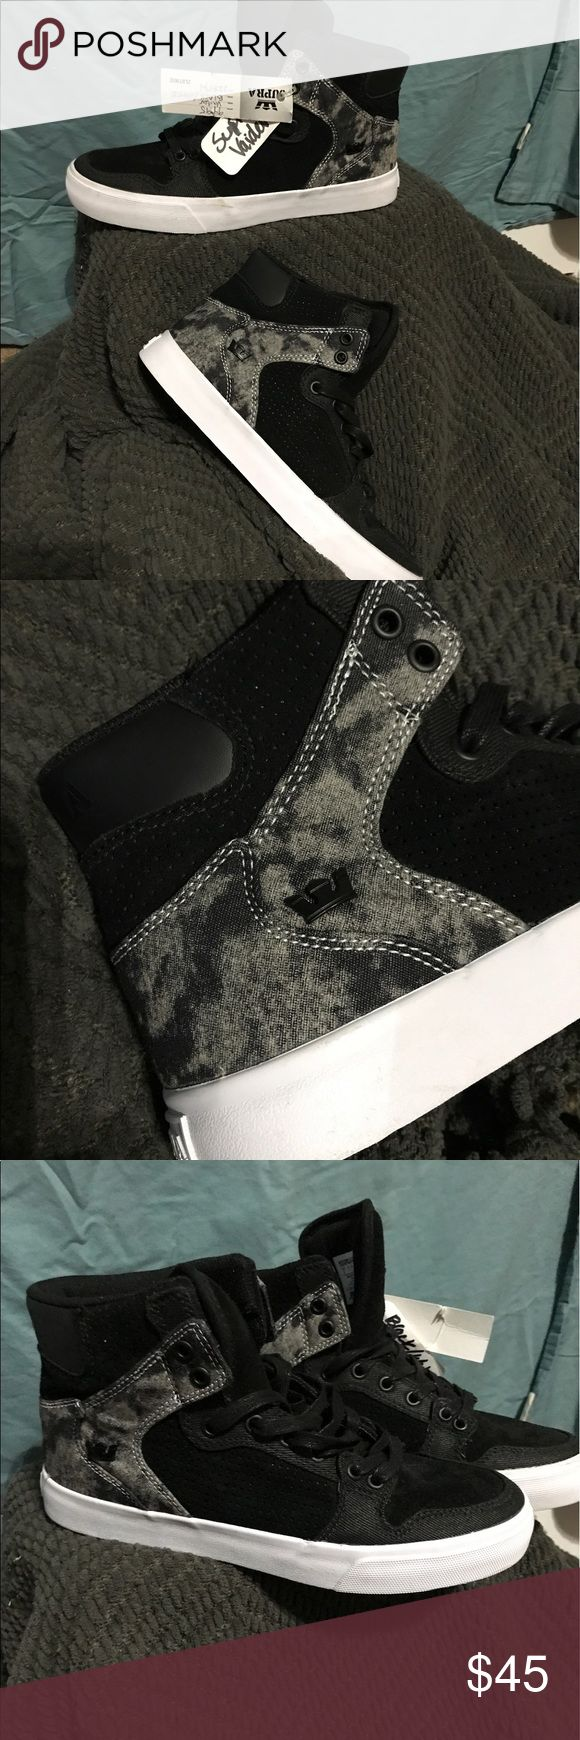 Supra vaider black/white Brand new never worn black and white Supra vaiders. Has slight markings on the white rubber due to storing them with other sneakers. Supra Shoes Sneakers